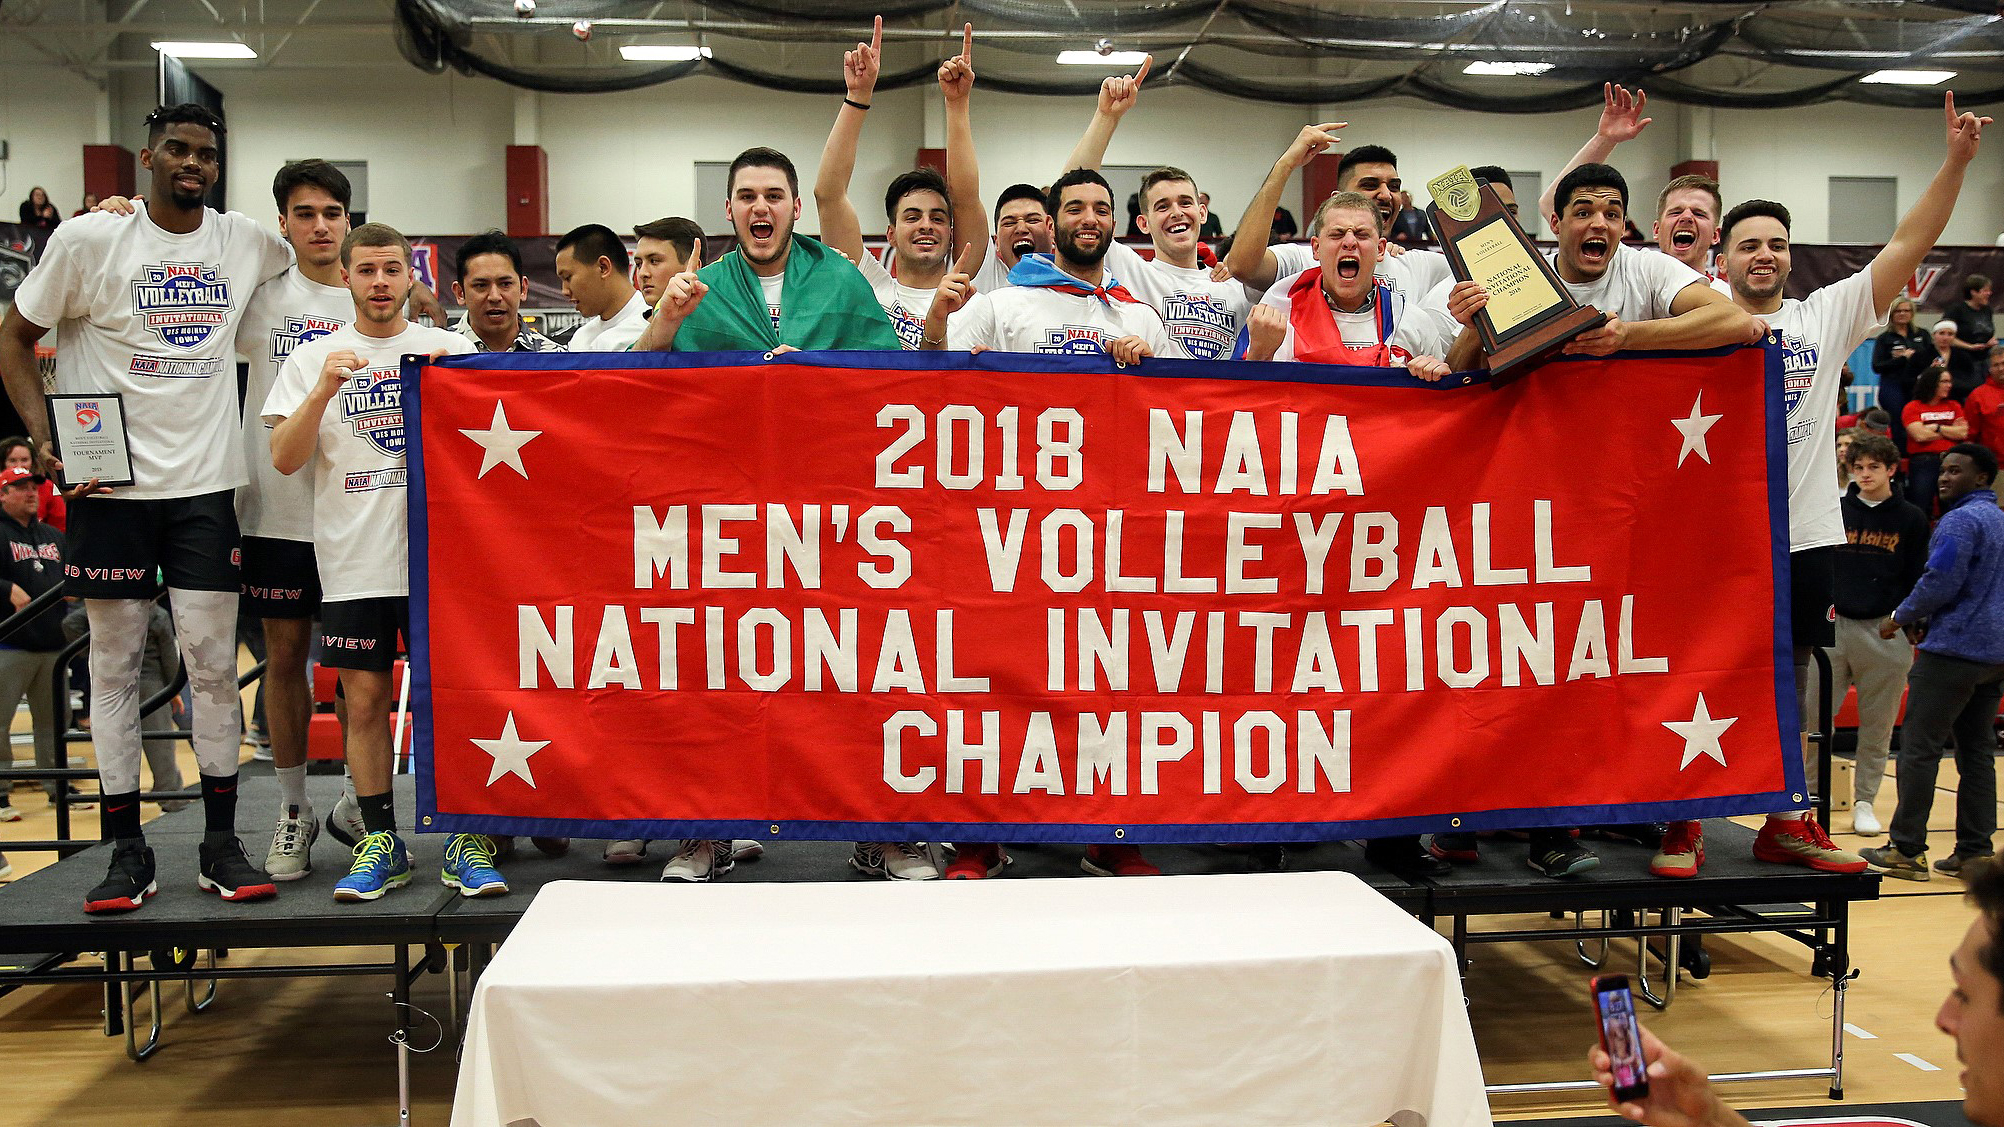 Grand View (Iowa) Wins First National Invitational Title